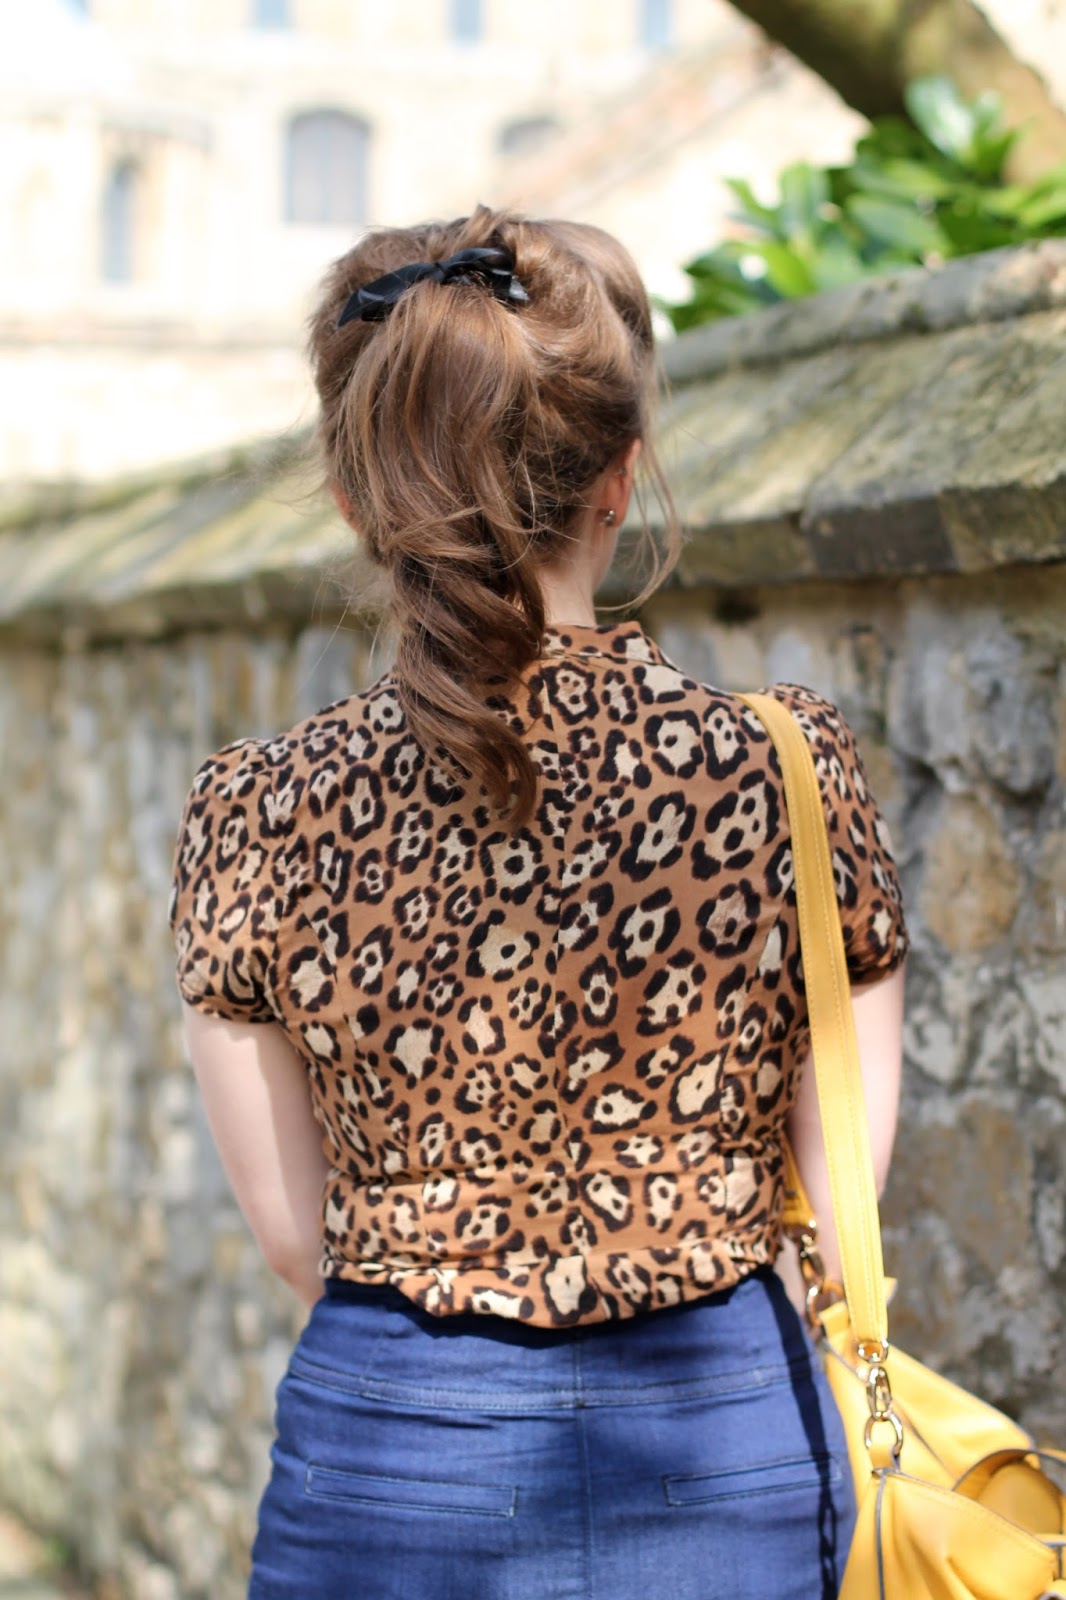 Rockabilly look - ponytail, leopard print top, denim pencil skirt